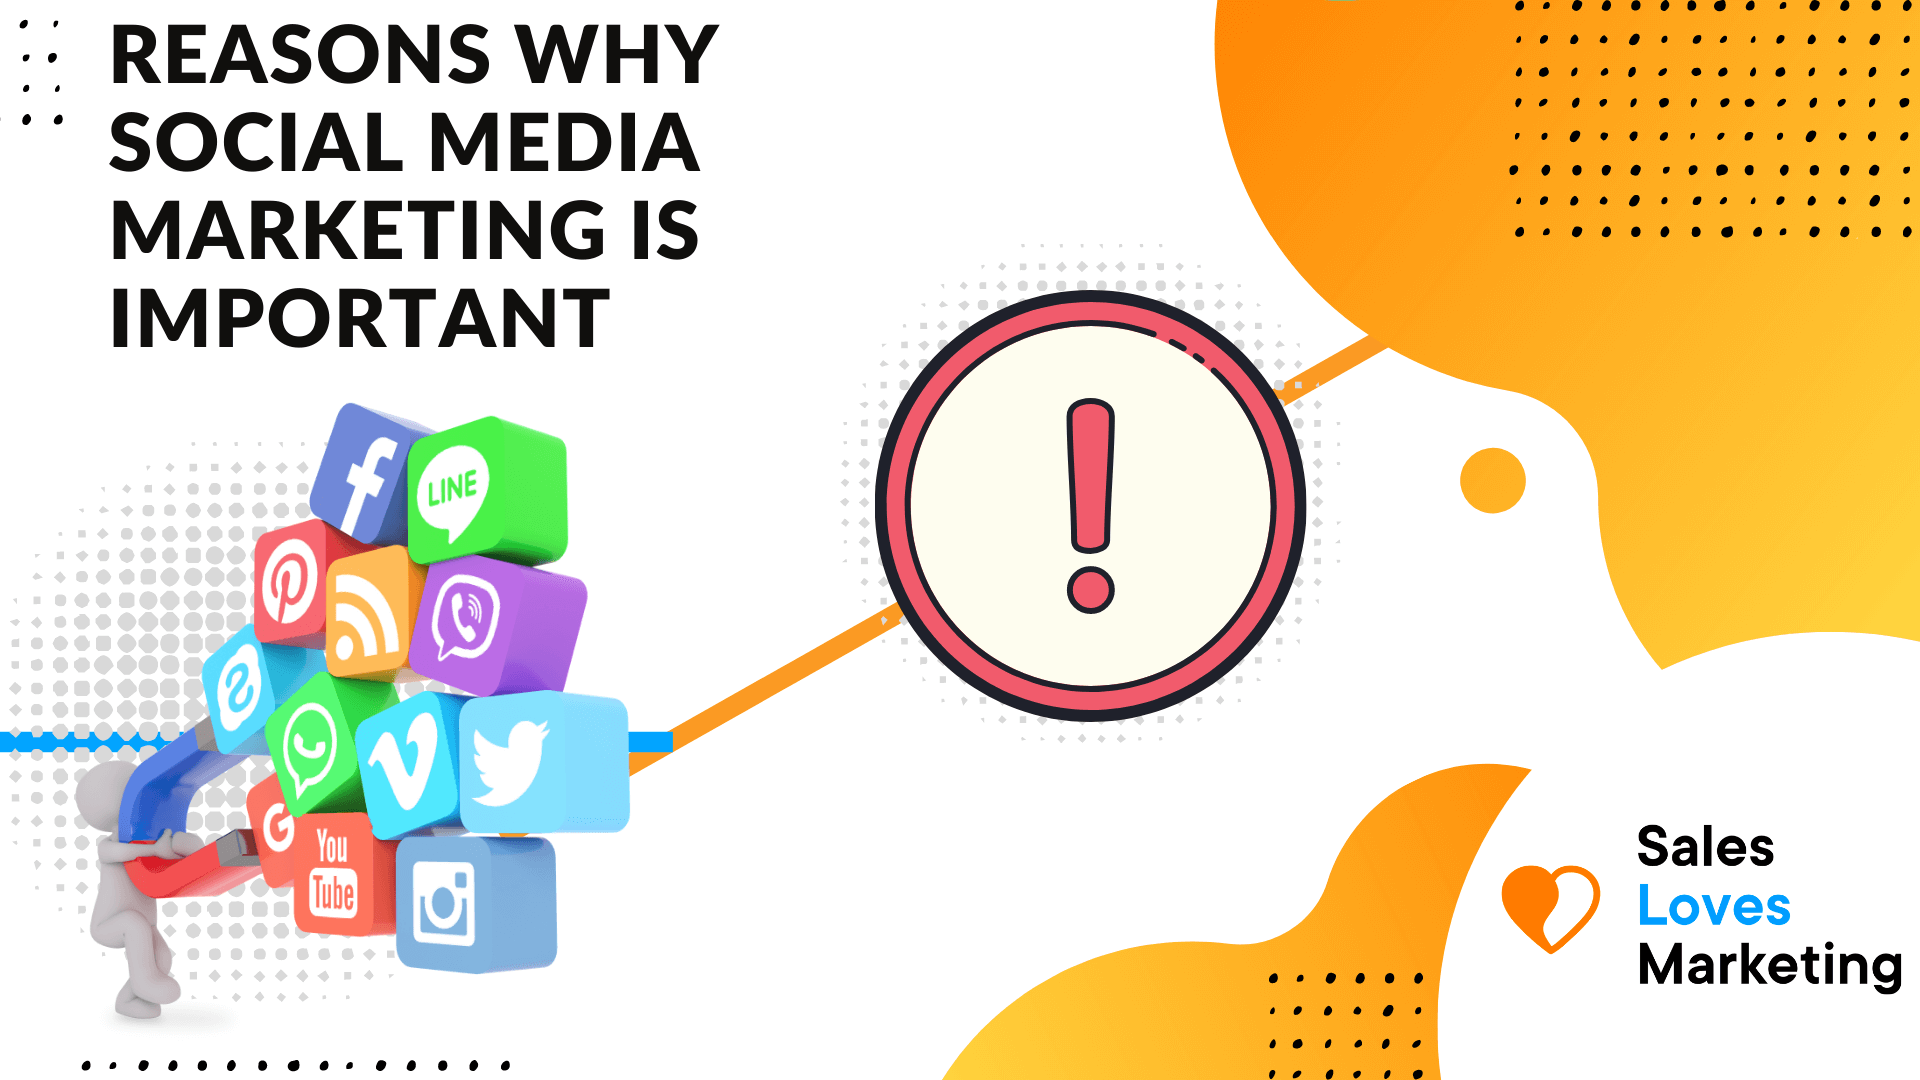 Why social media marketing is important for your business and how it can help you to grow your business.